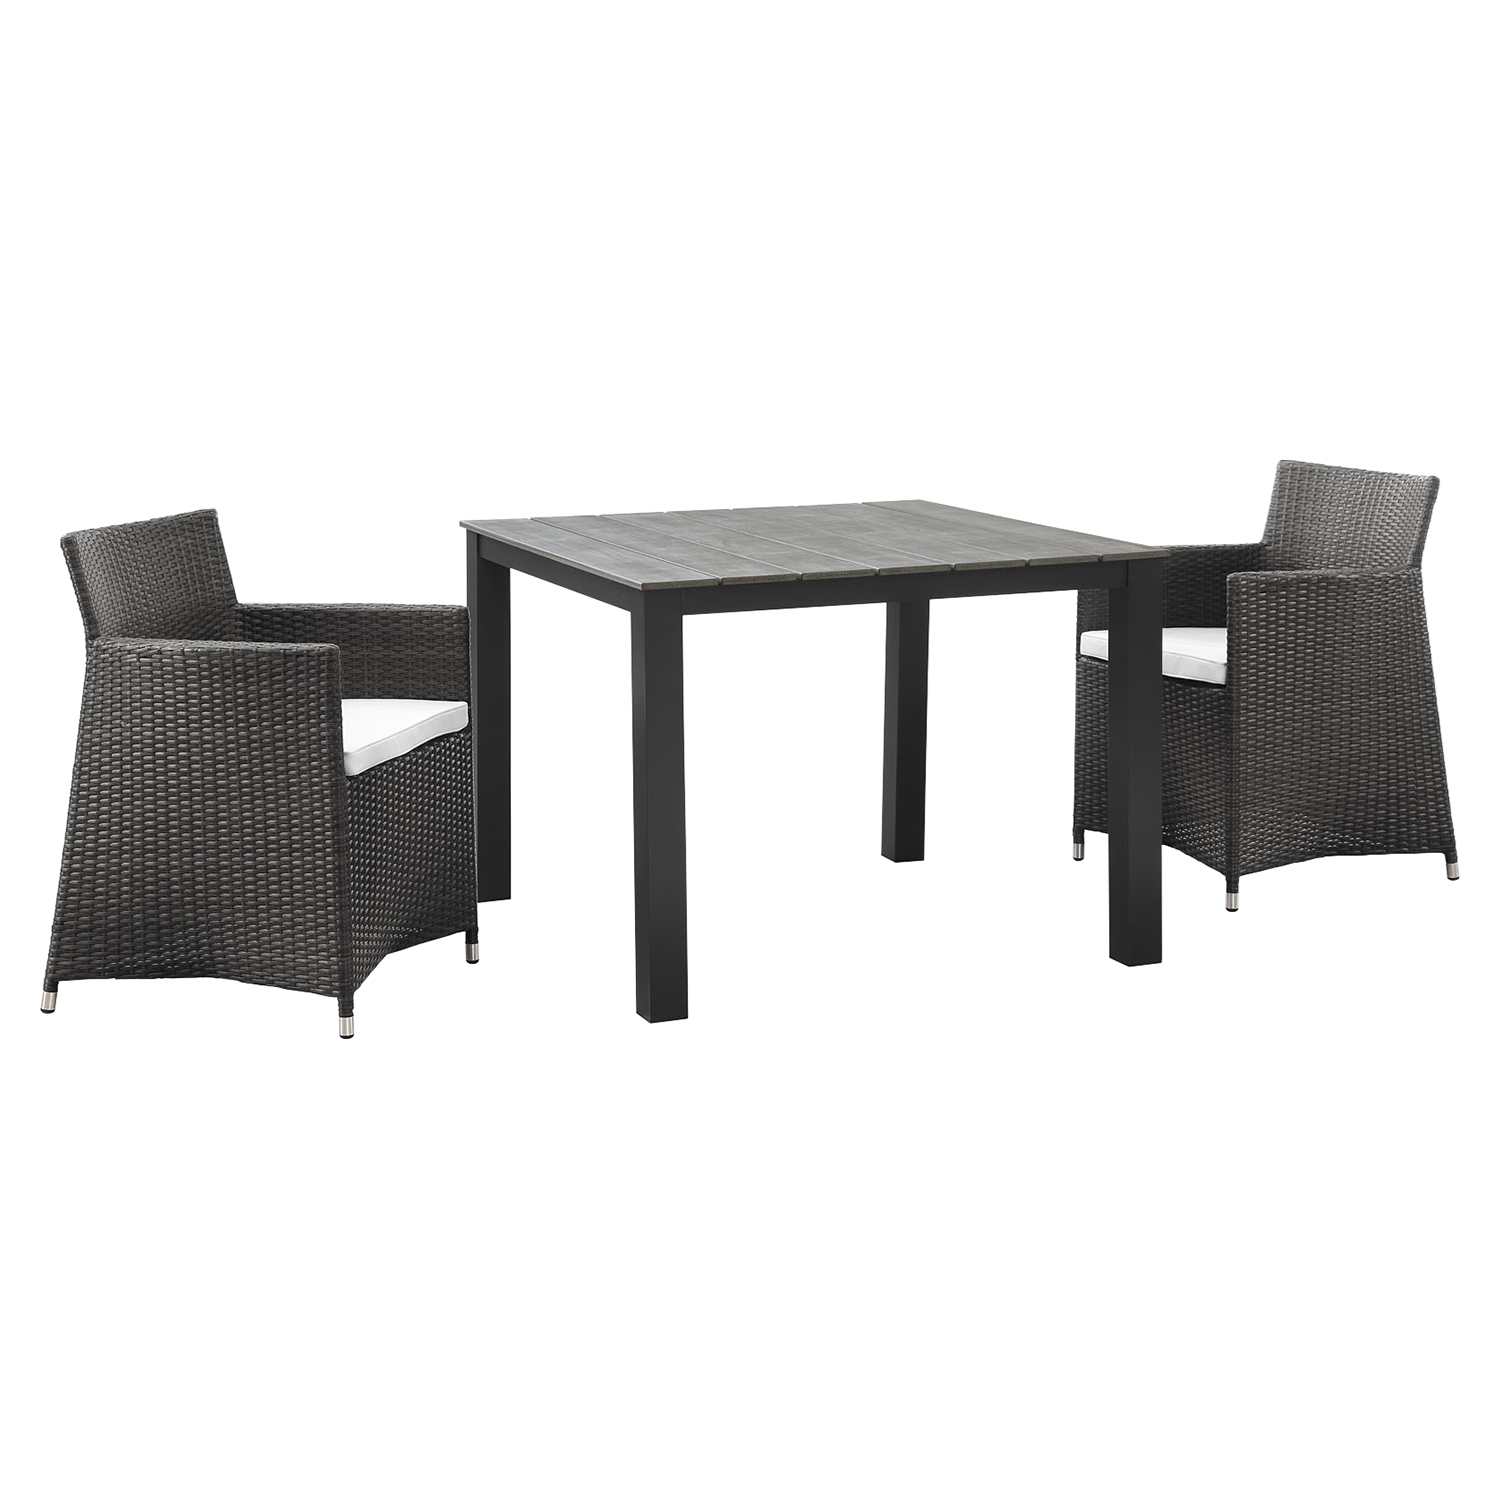 Junction 3 Pieces Outdoor Patio Set - Wicker, Brown Frame, White Cushion - EEI-1742-BRN-WHI-SET